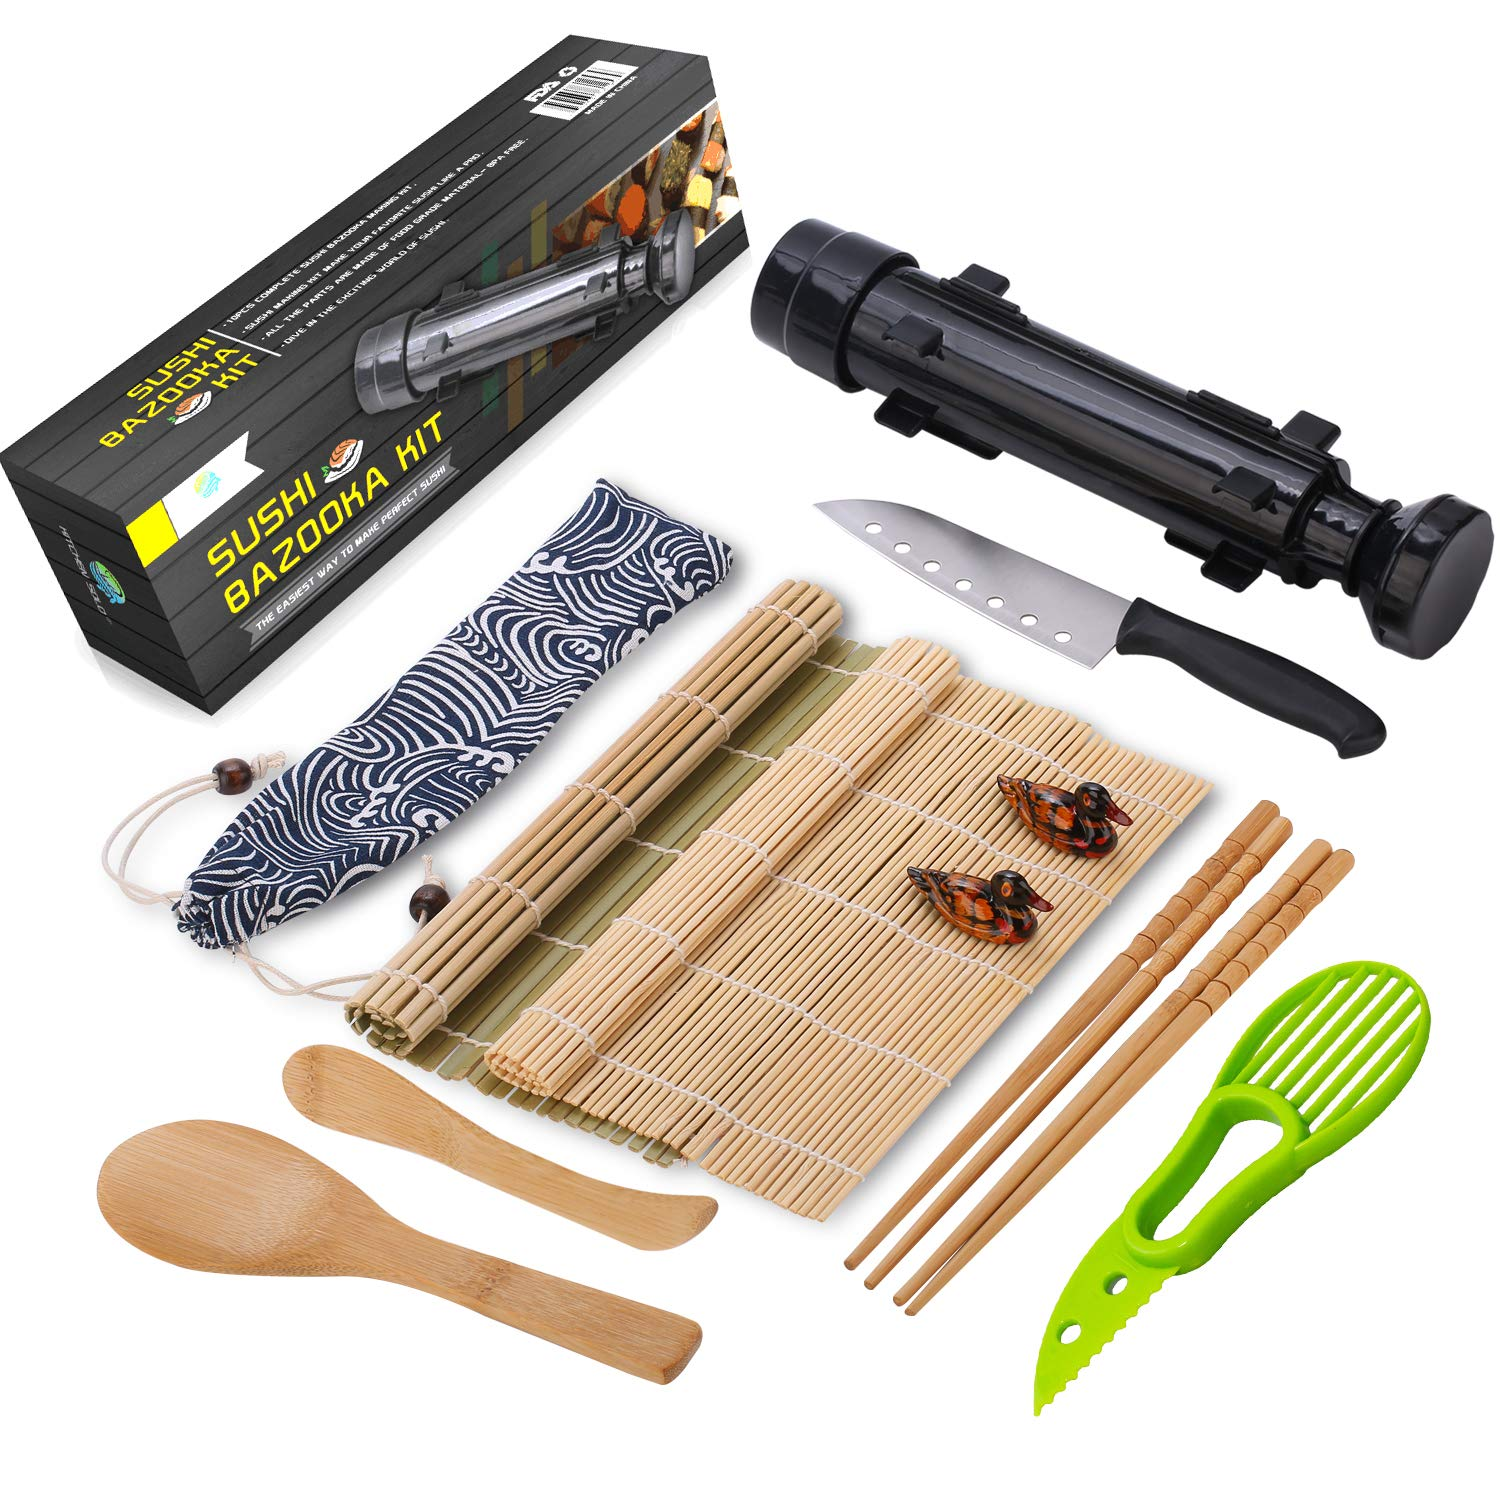 Sushi Making Kit - All In One Sushi Bazooka Maker with Bamboo Mats, Bamboo Chopsticks, Avocado Slicer, Paddle,Spreader,Sushi Knife, Chopsticks Holder, Cotton Bag - DIY Sushi Roller Machine - Black